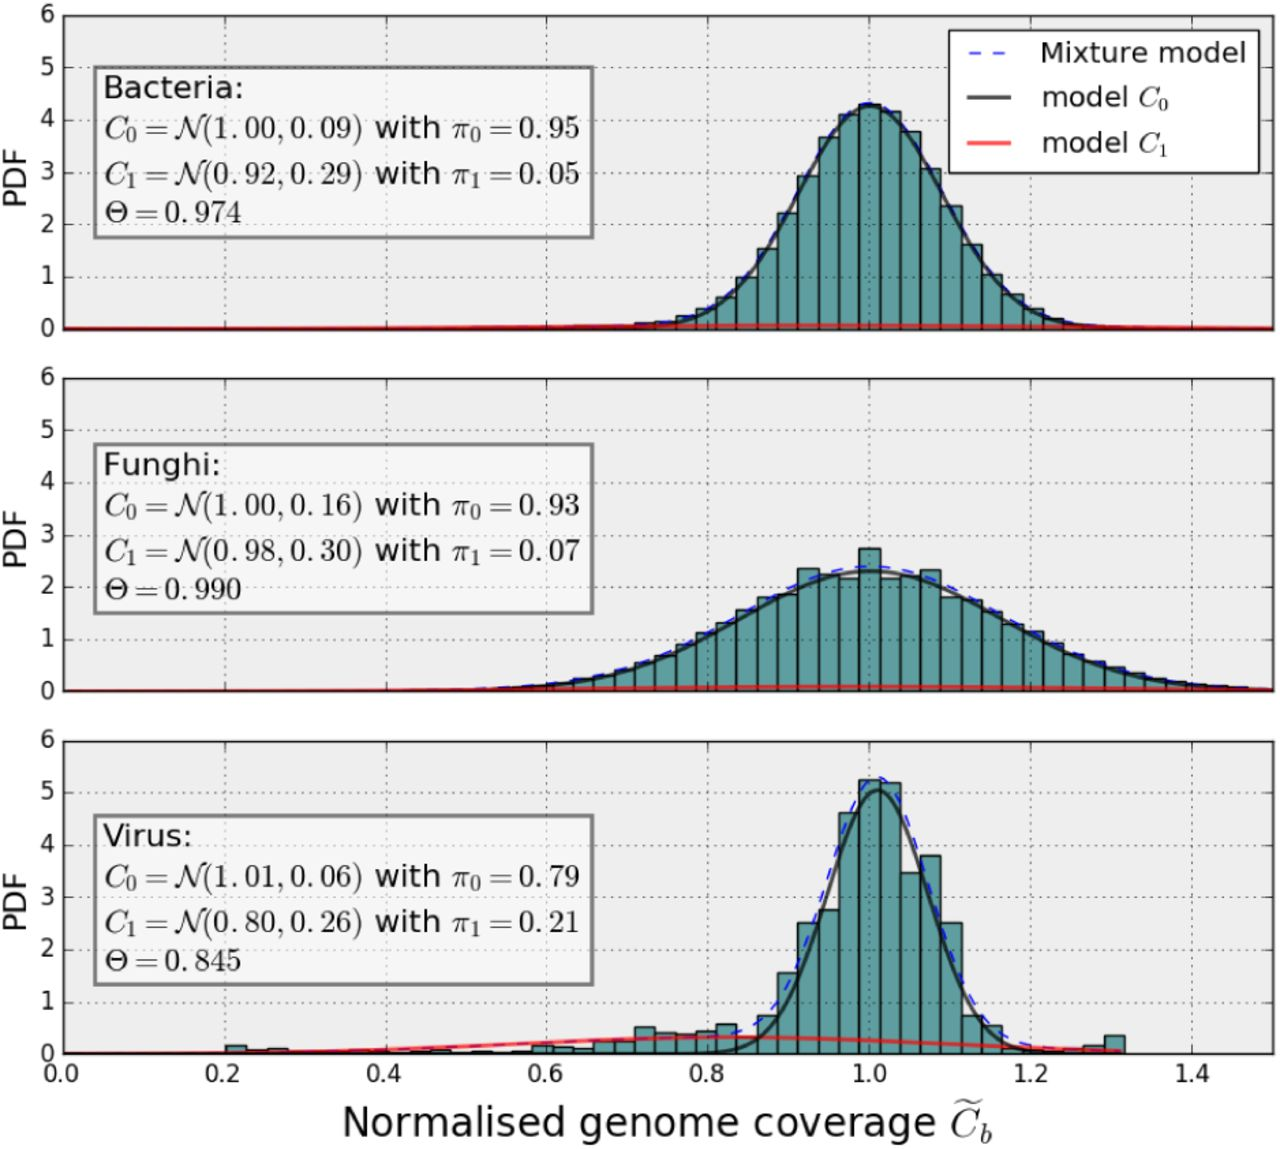 Detection and characterization of low and high genome